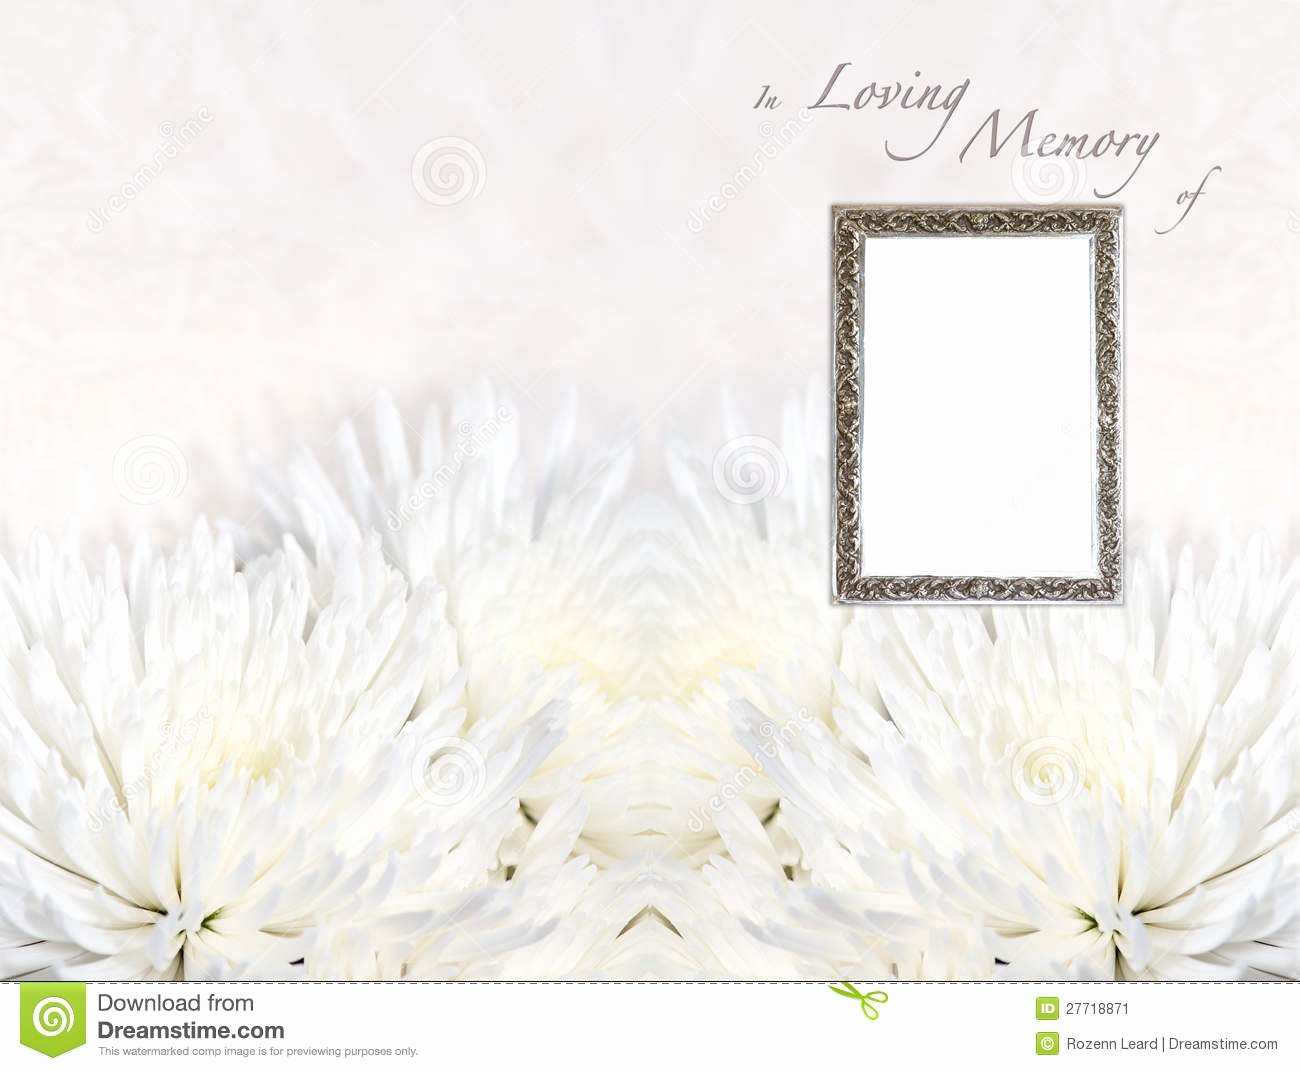 In Loving Memory Templates Gallery Template Design Ideas